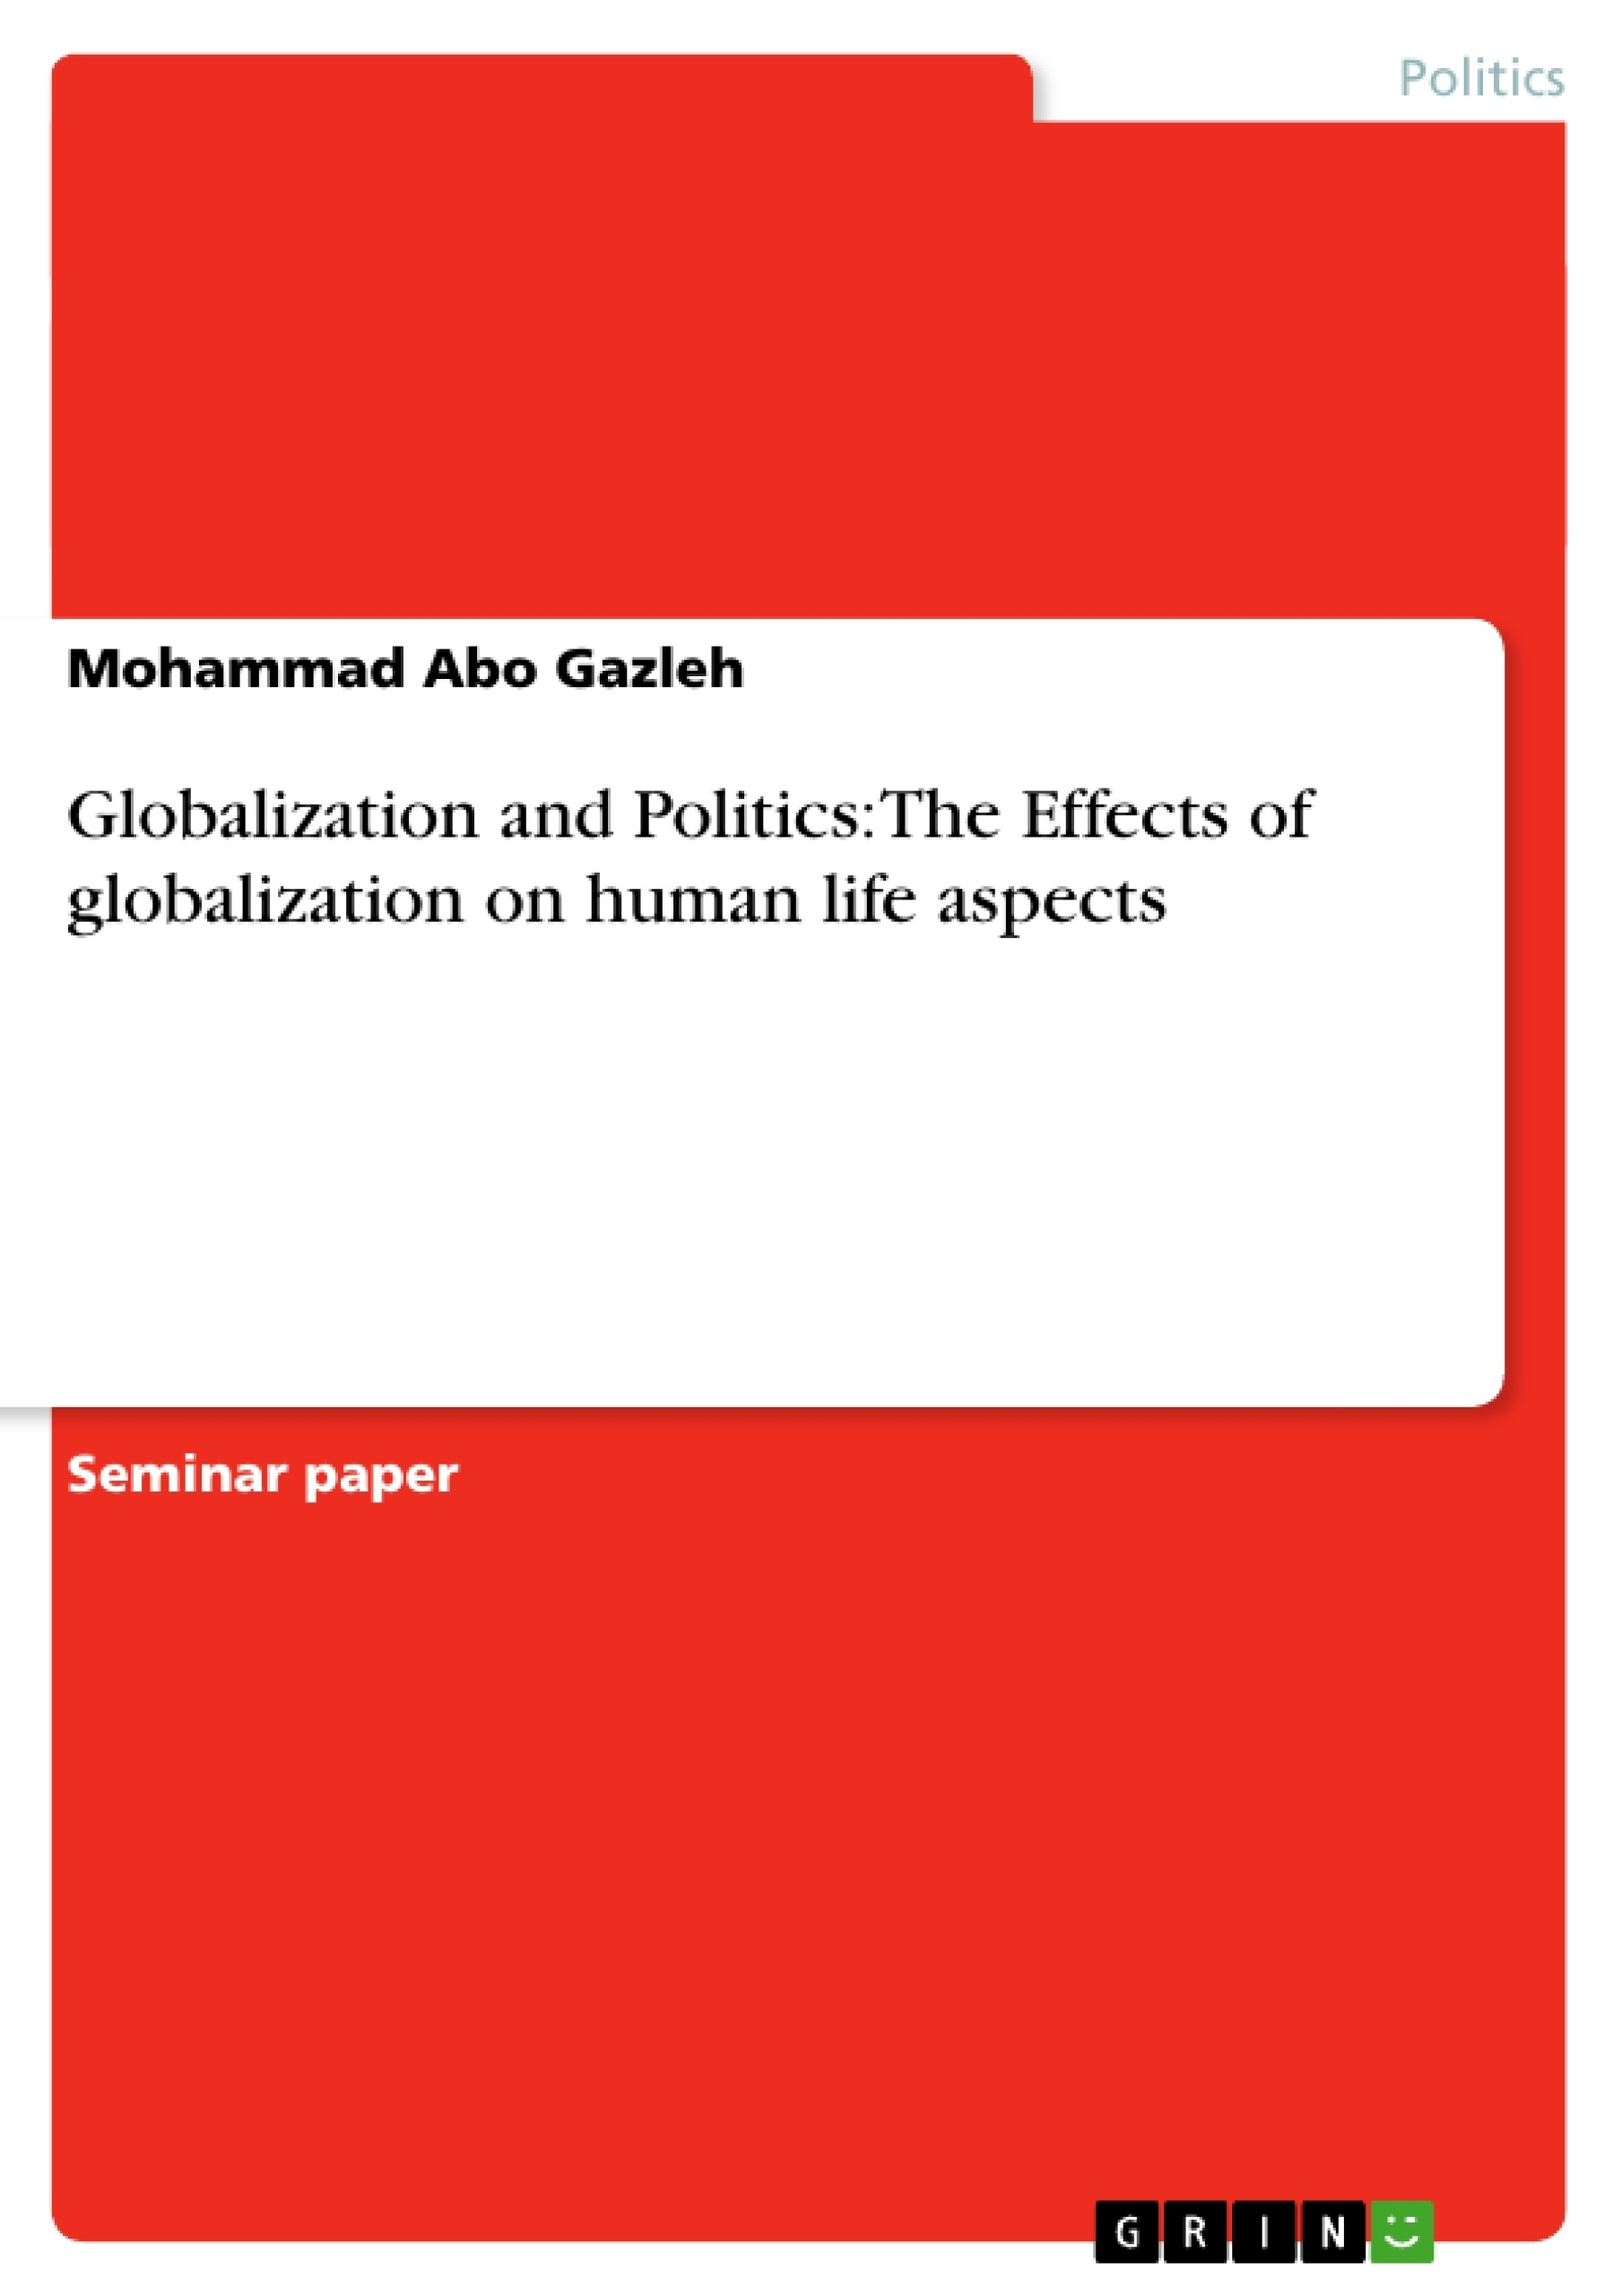 Human rights globalization essay